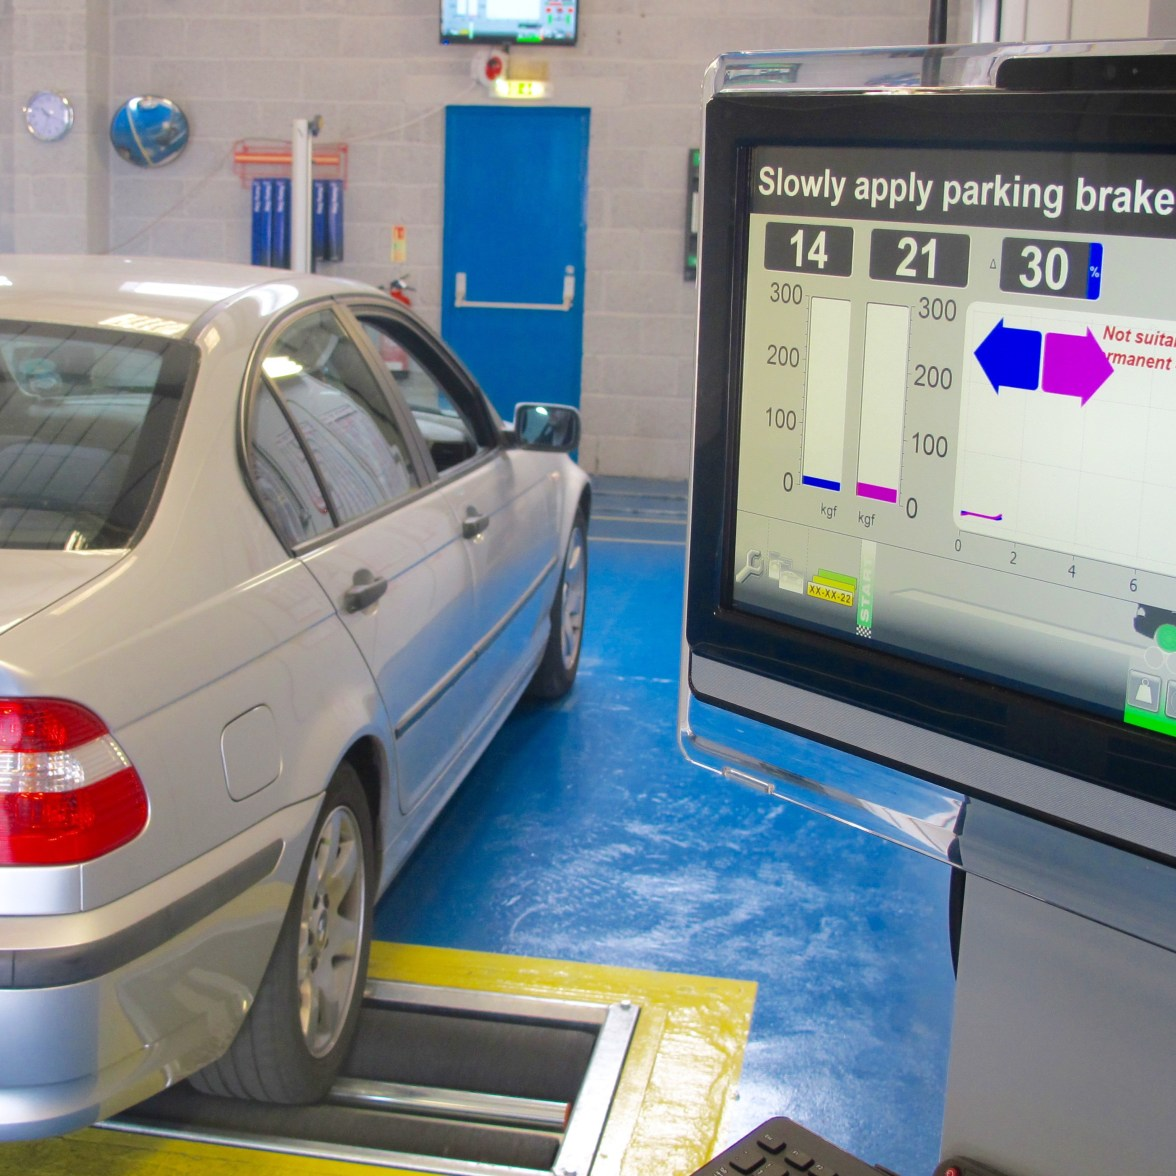 Gallery of images car in mot test centre on brake testing equipment with a screen showing the results